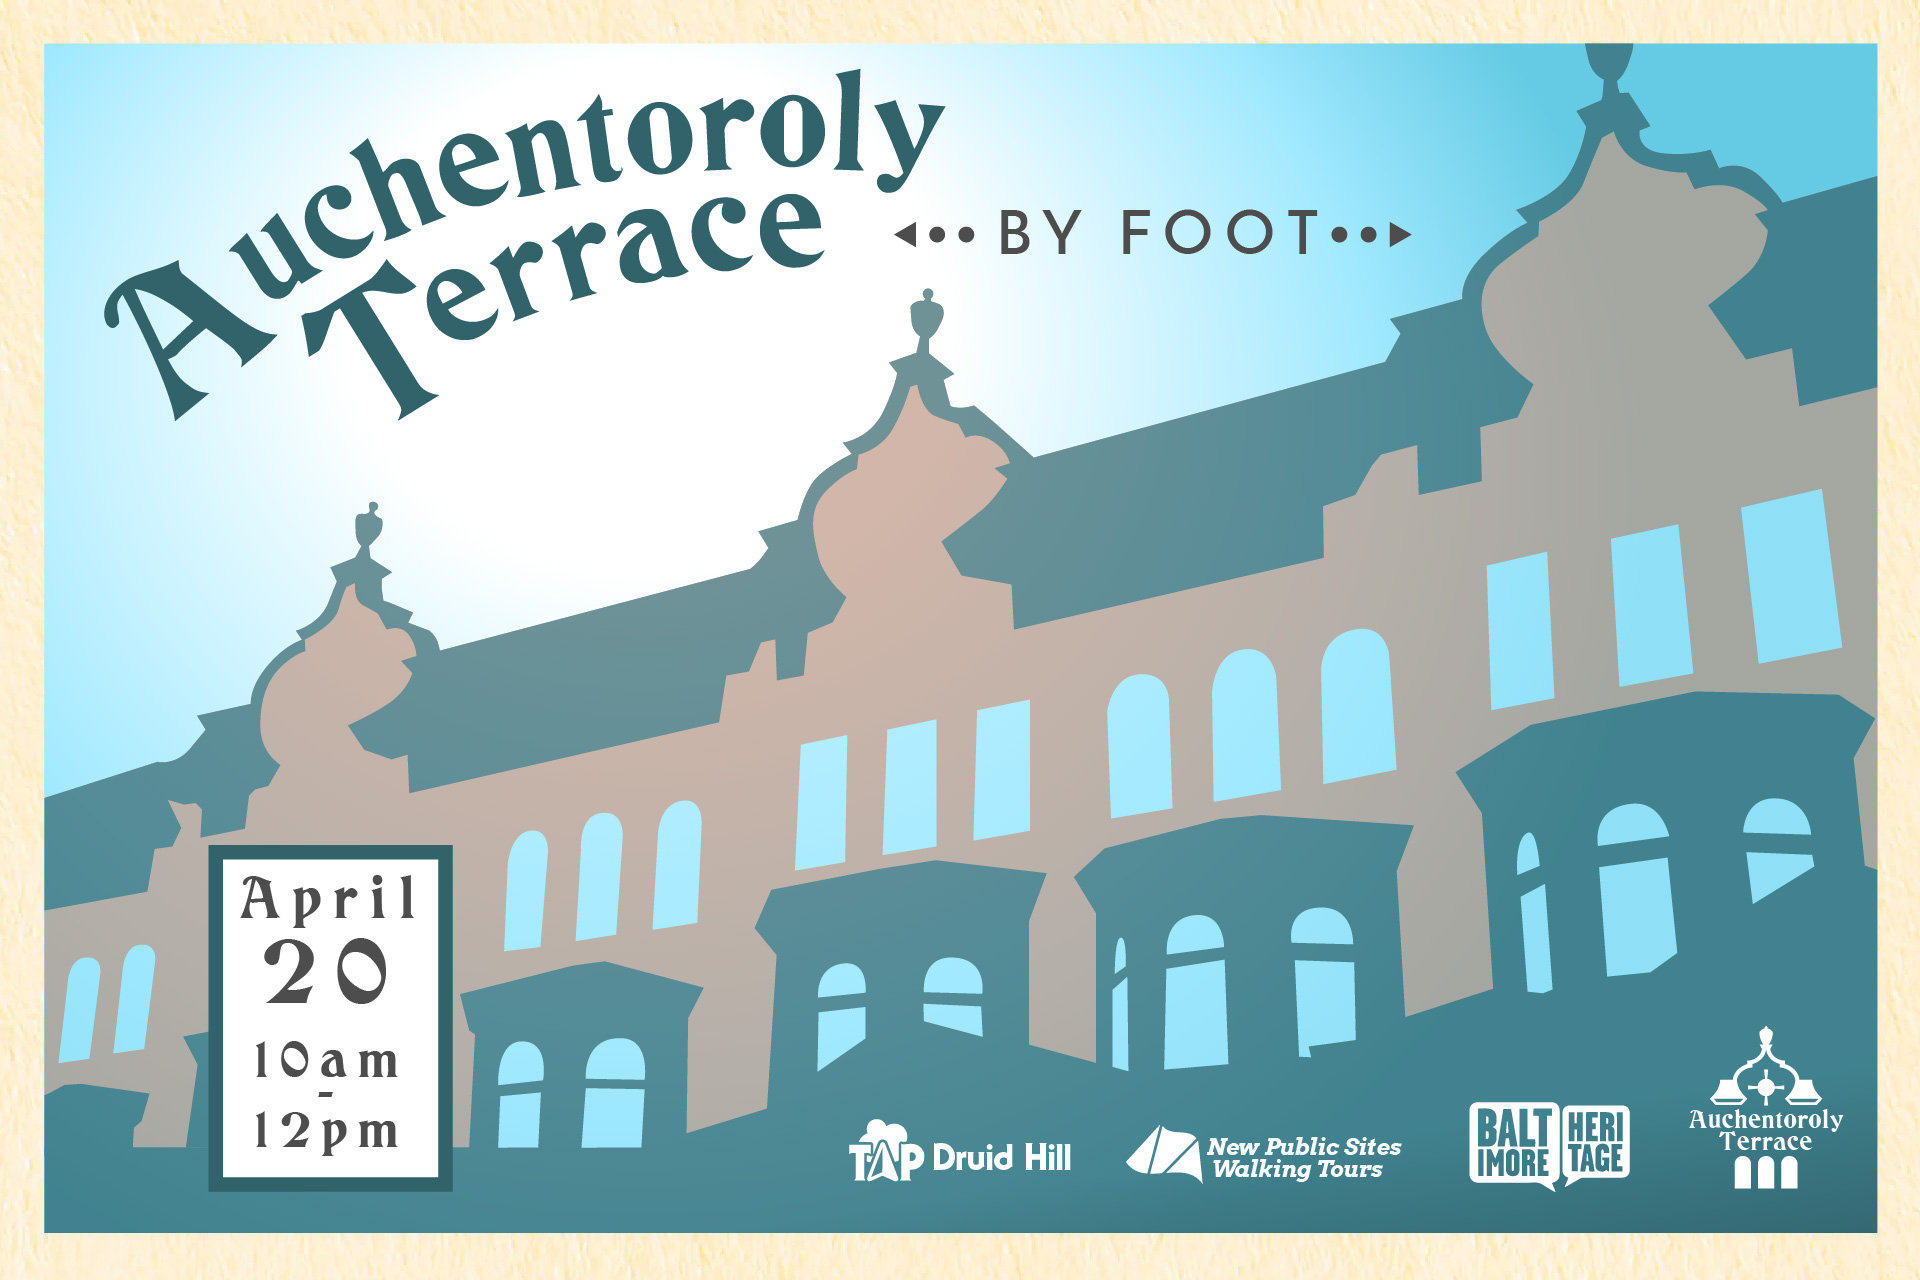 Auchentoroly Terrace by Foot